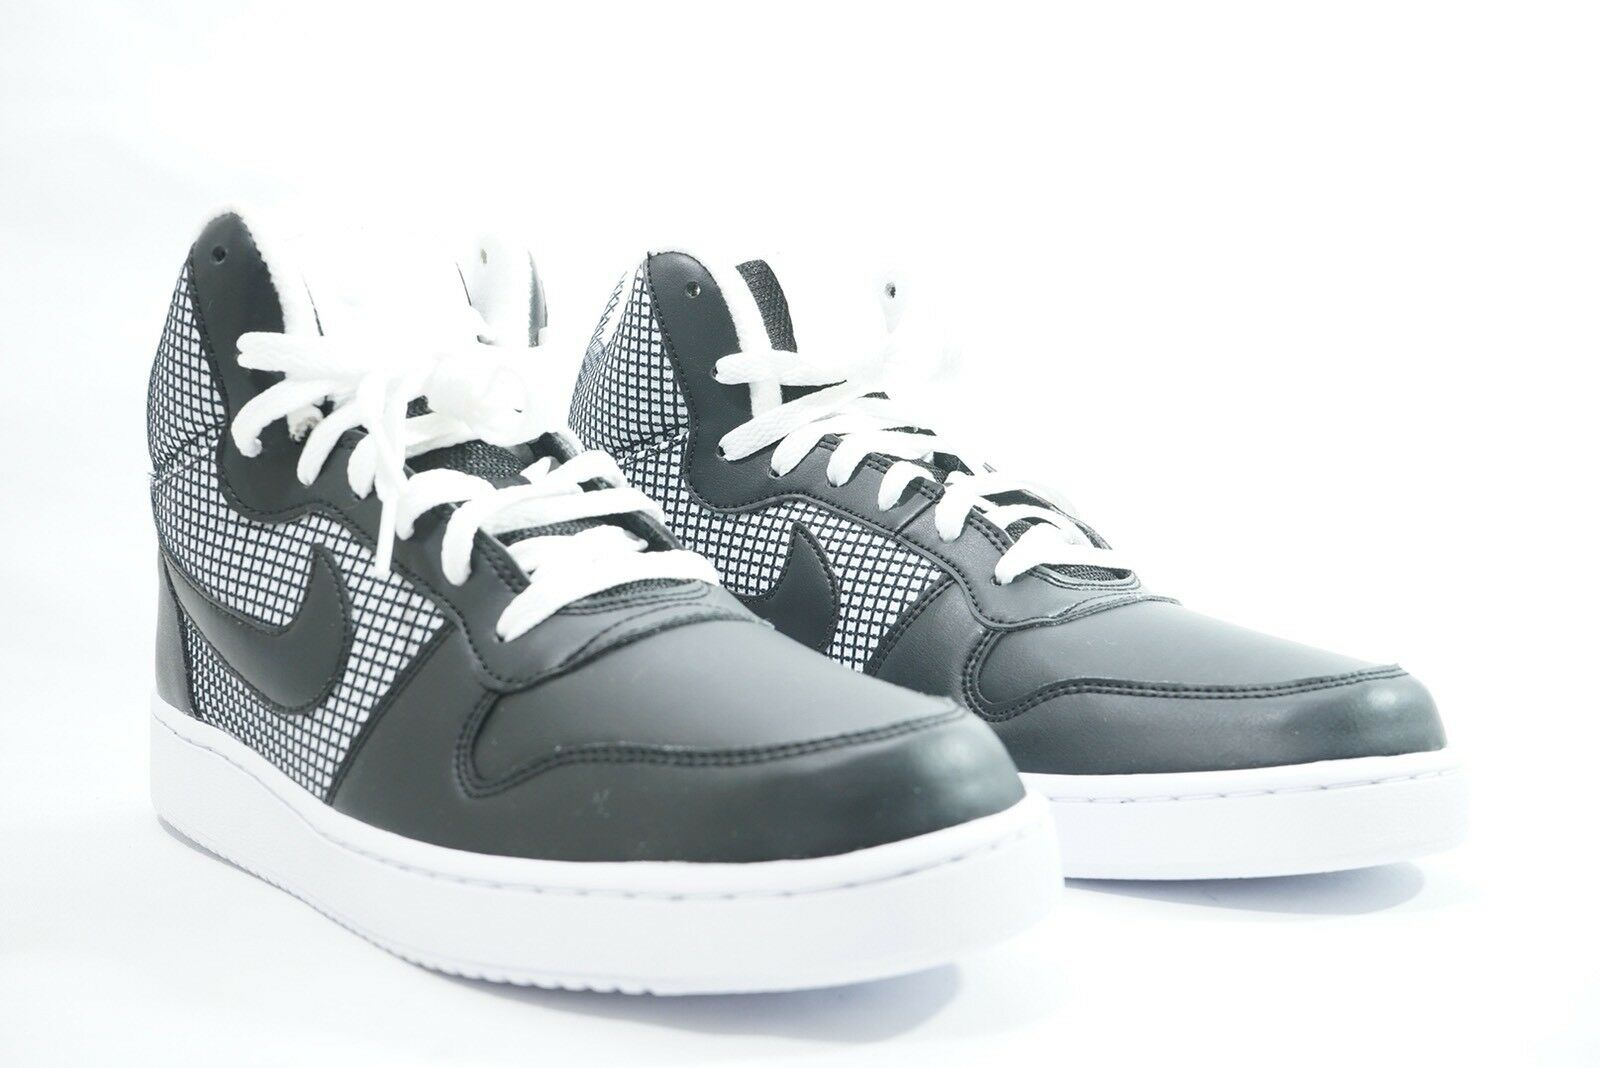 Nike Black/white Court Borough Mid 916793-100 Wmns Shoes Black/white Nike Sz 11 DISPLAY PIECE c579e0